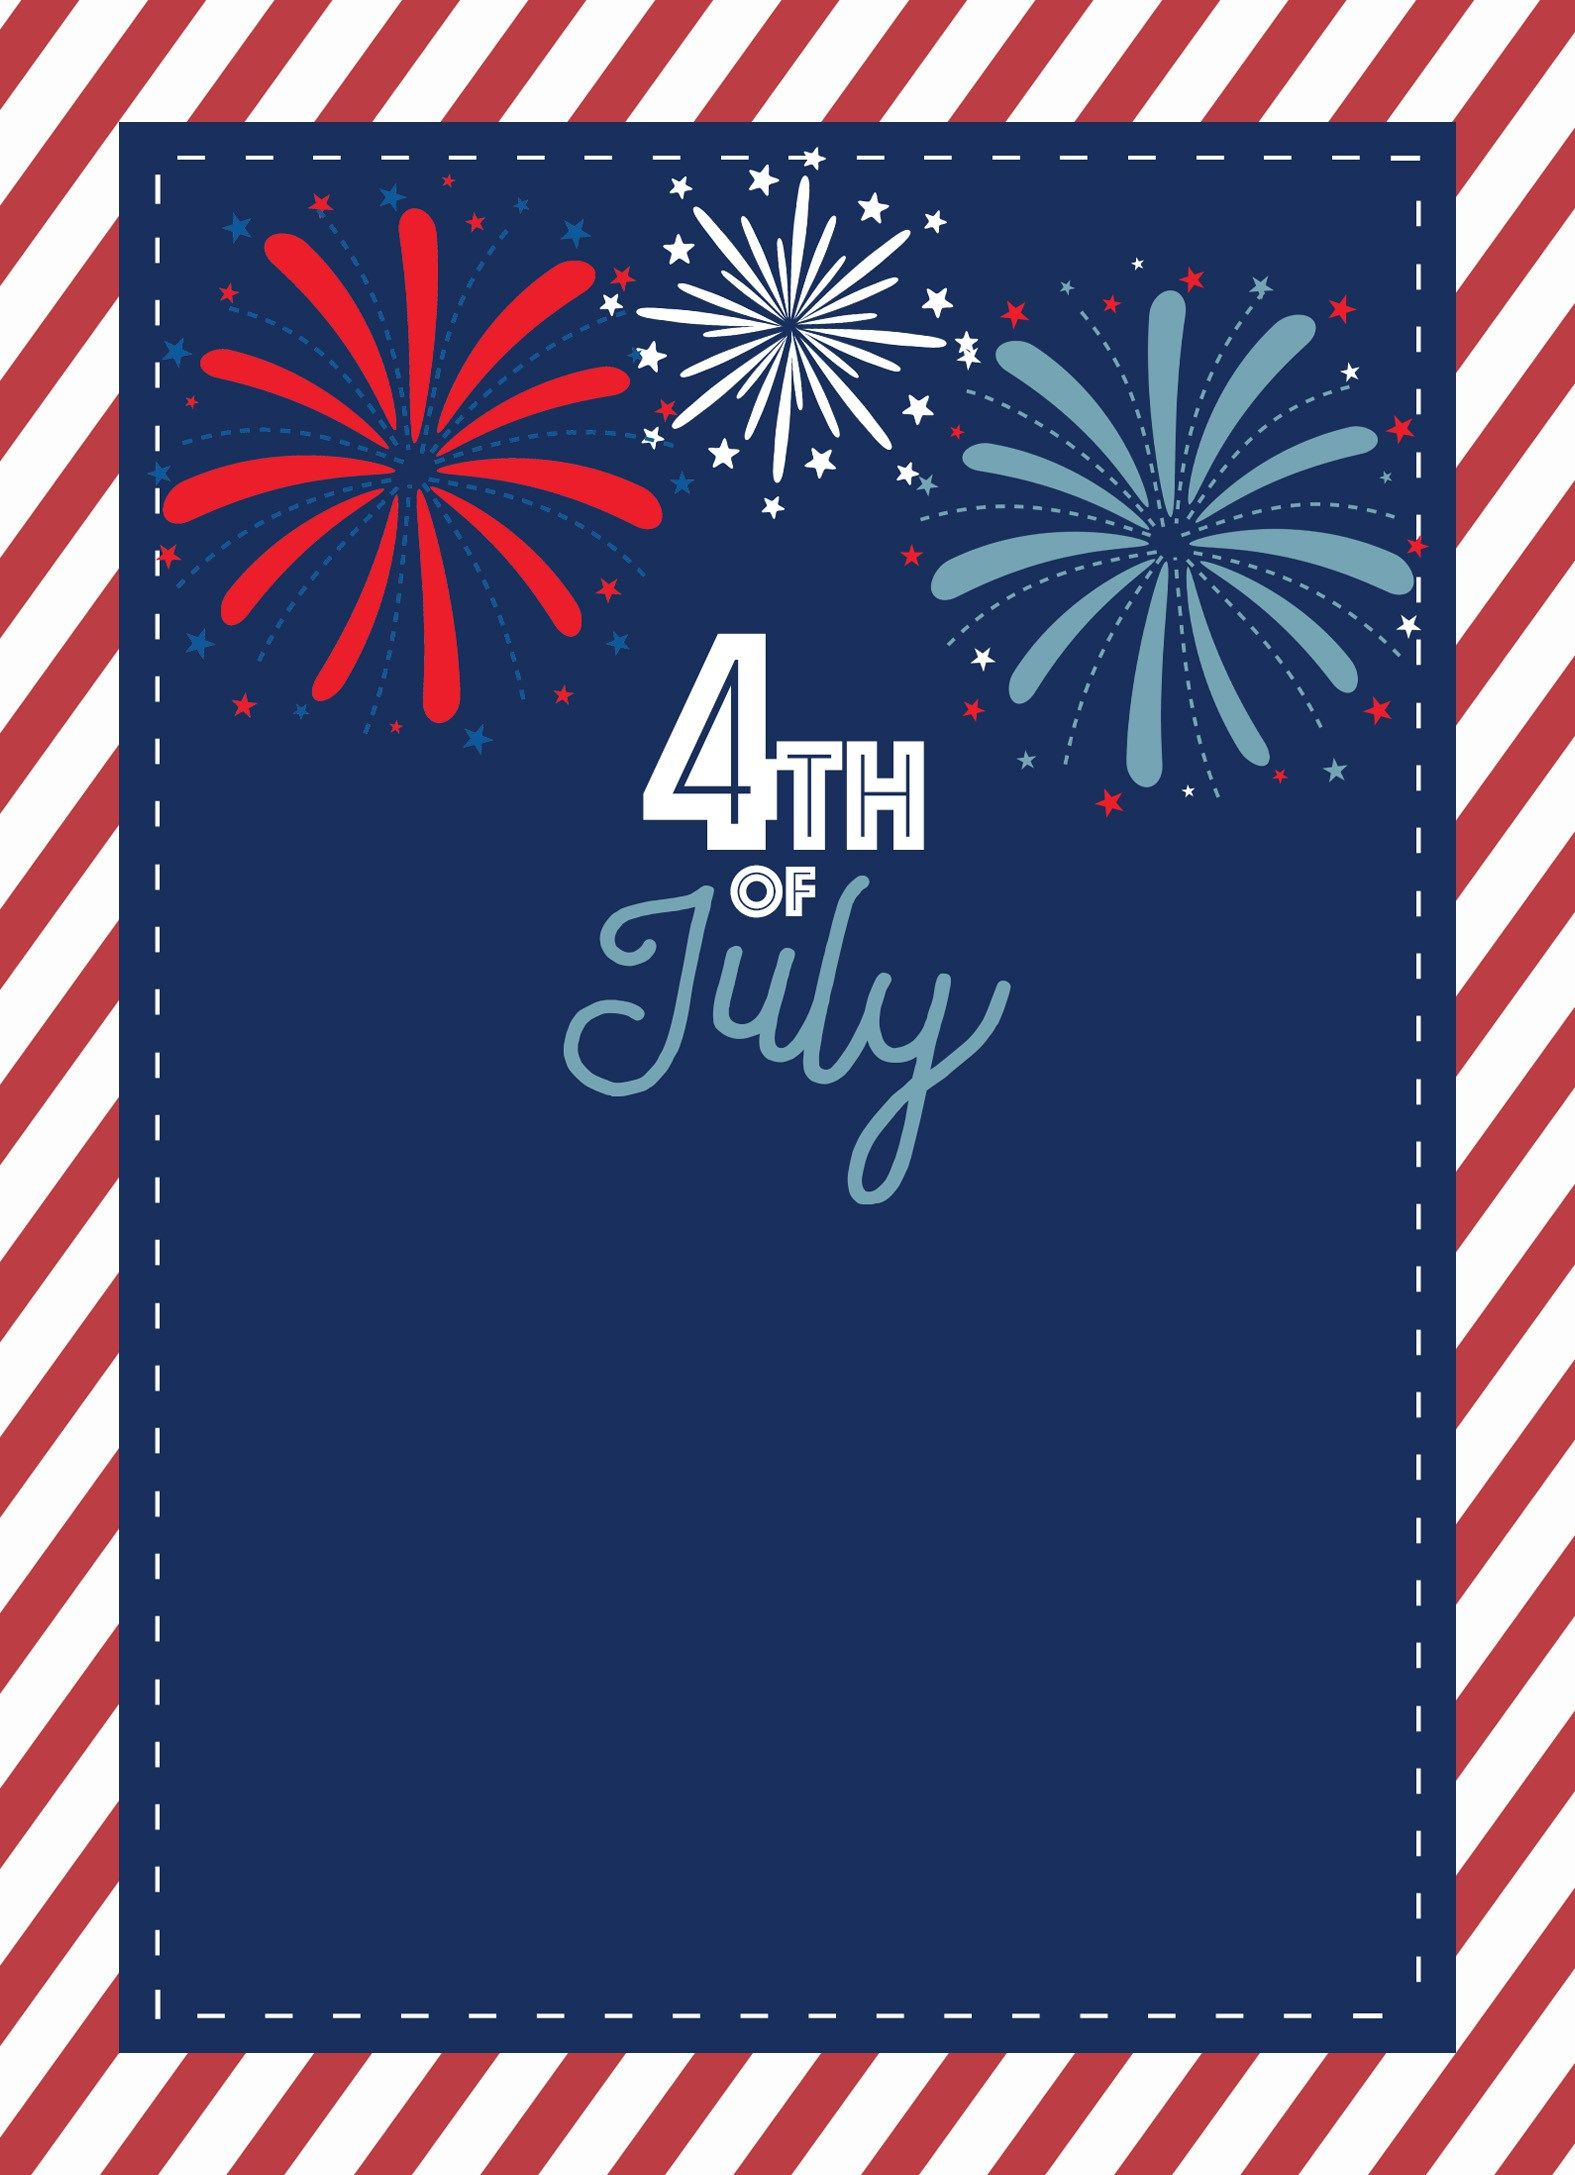 Fourth Of July Invite Wallpapers On Wallpaperdog